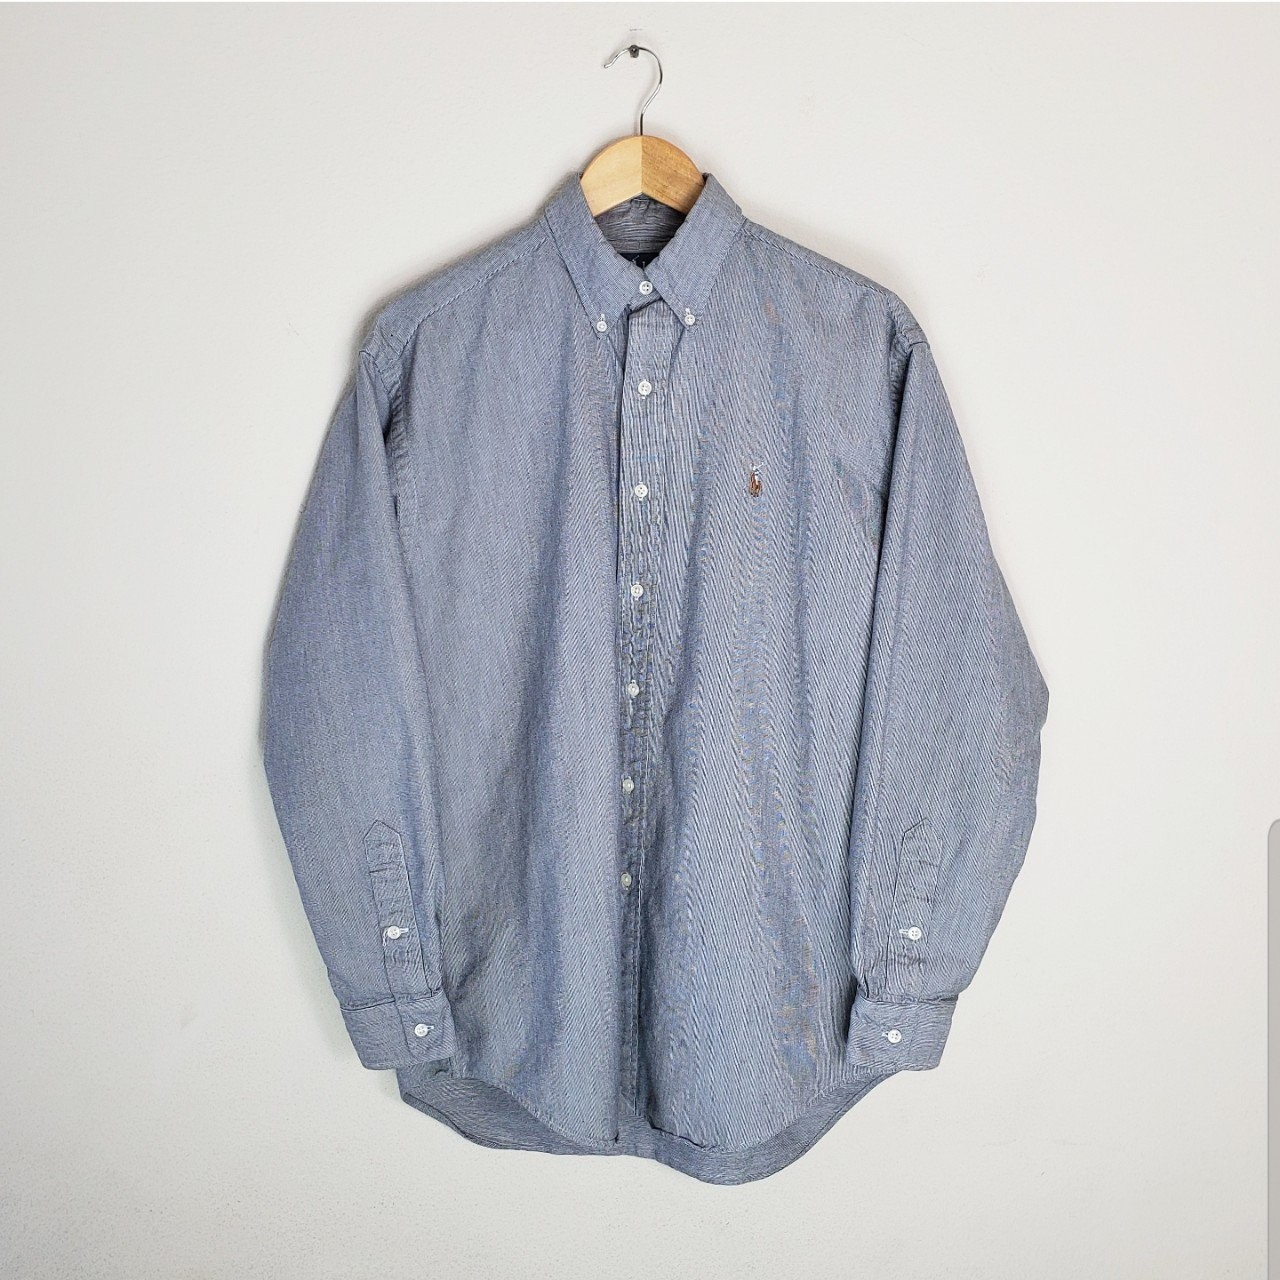 Product Image 1 - Polo by ralph lauren shirt